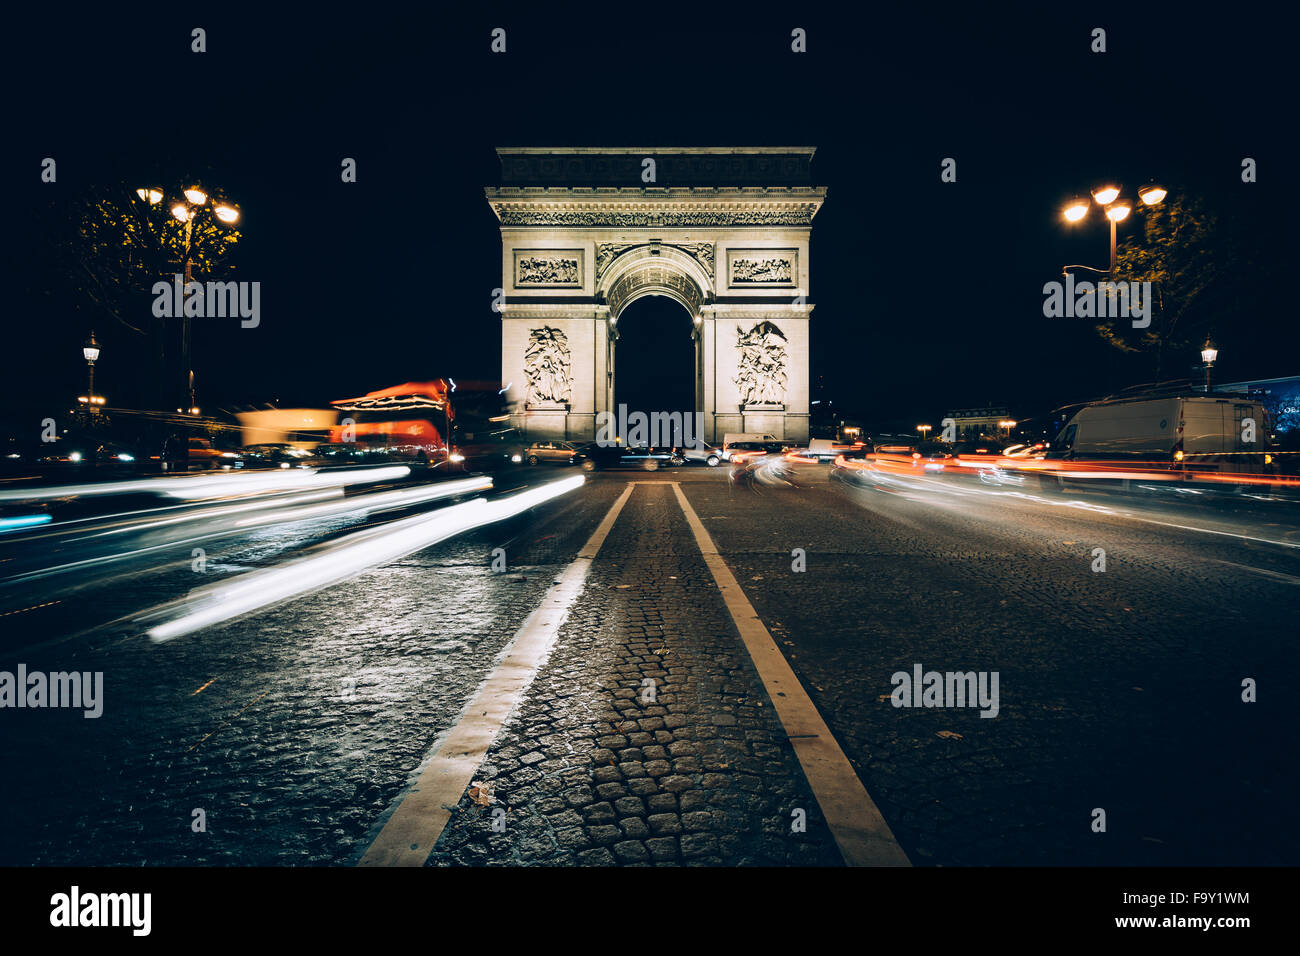 Traffic on Avenue des Champs-Élysées and the Arc de Triomphe at night in Paris, France. - Stock Image